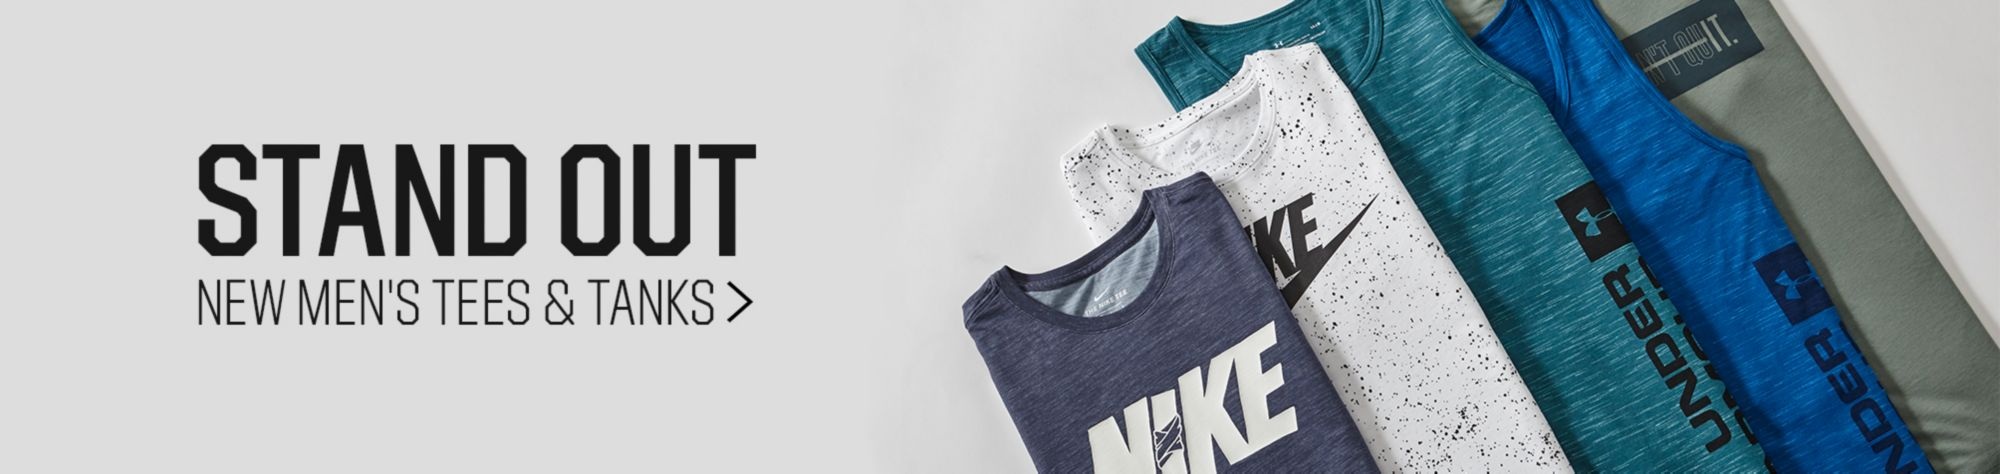 Stand Out New Men's Tees & Tanks